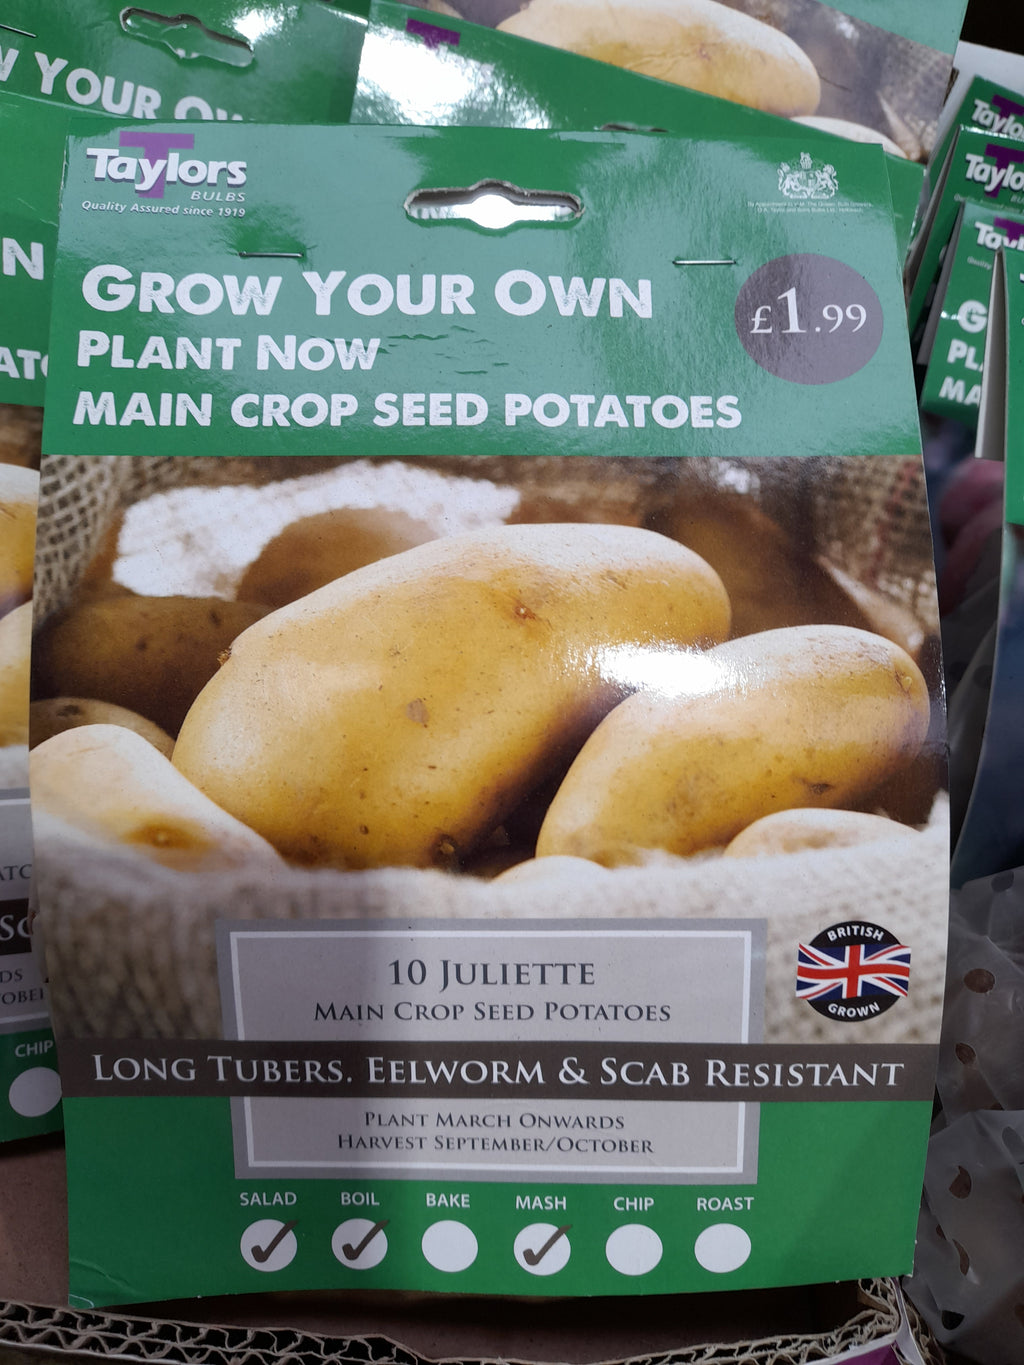 Juliette Seed Potatoes 10 Tuber Pack